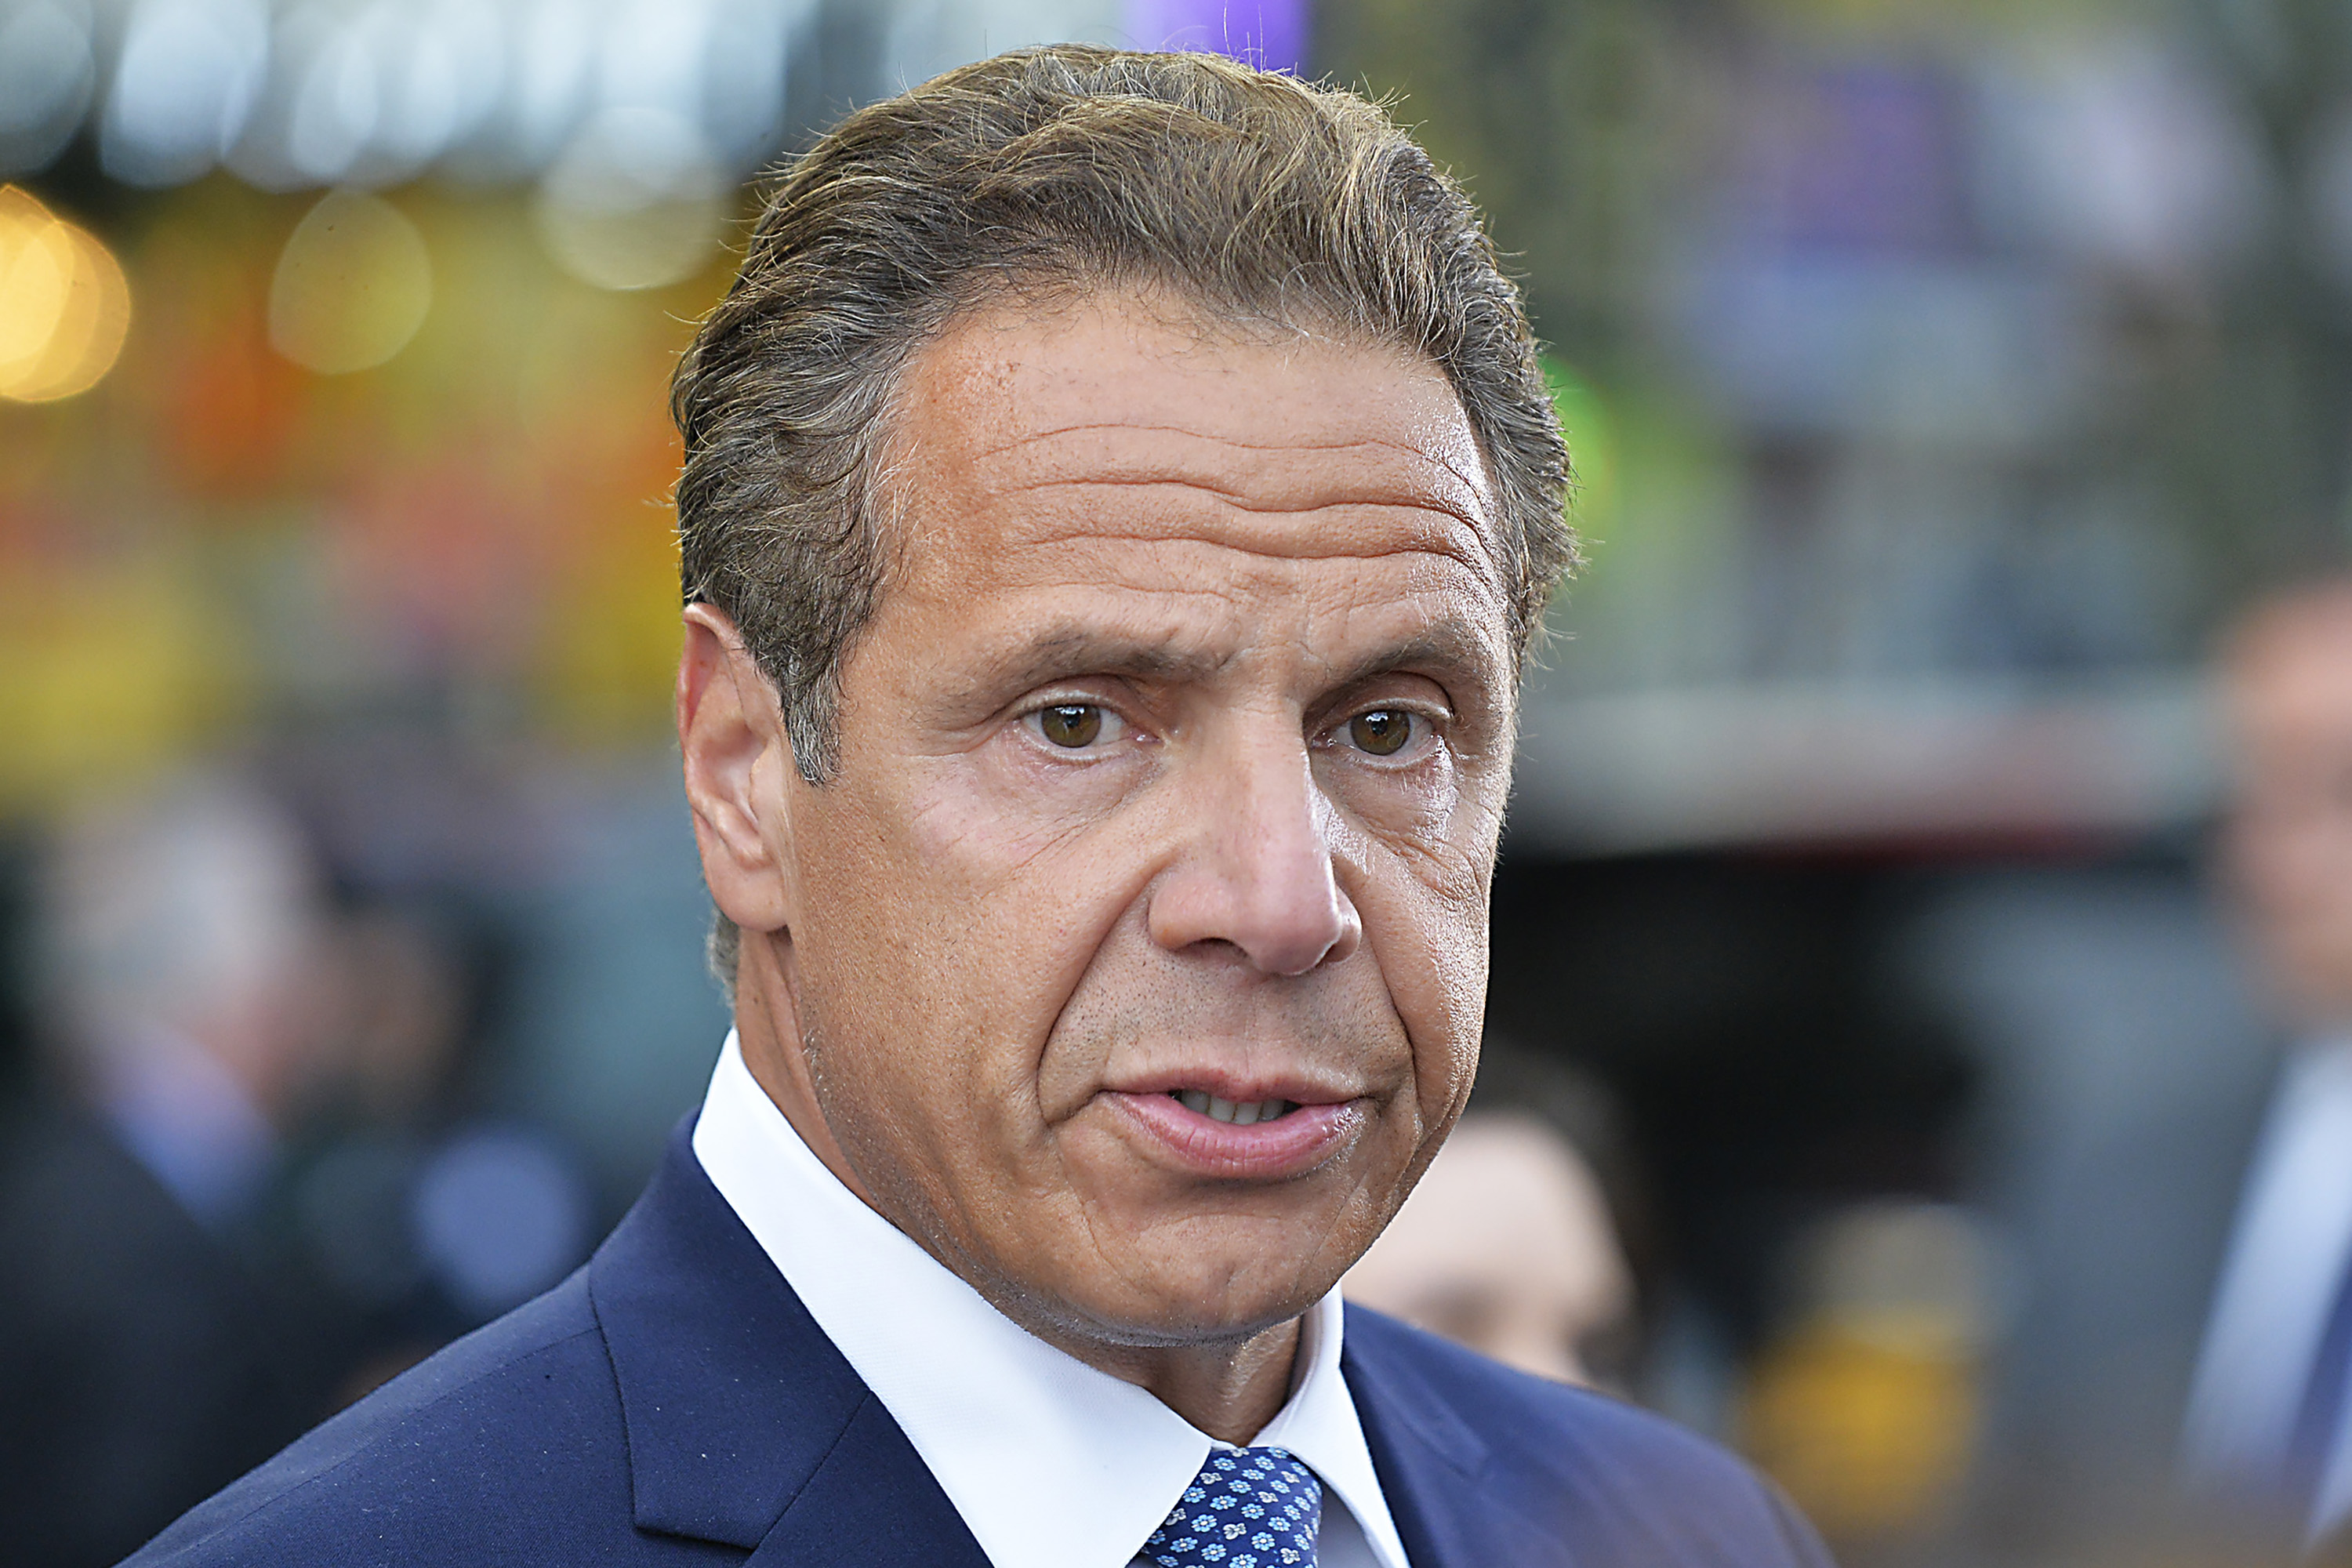 Cuomo S Approval Ratings Get Torched By Summer Of Hell